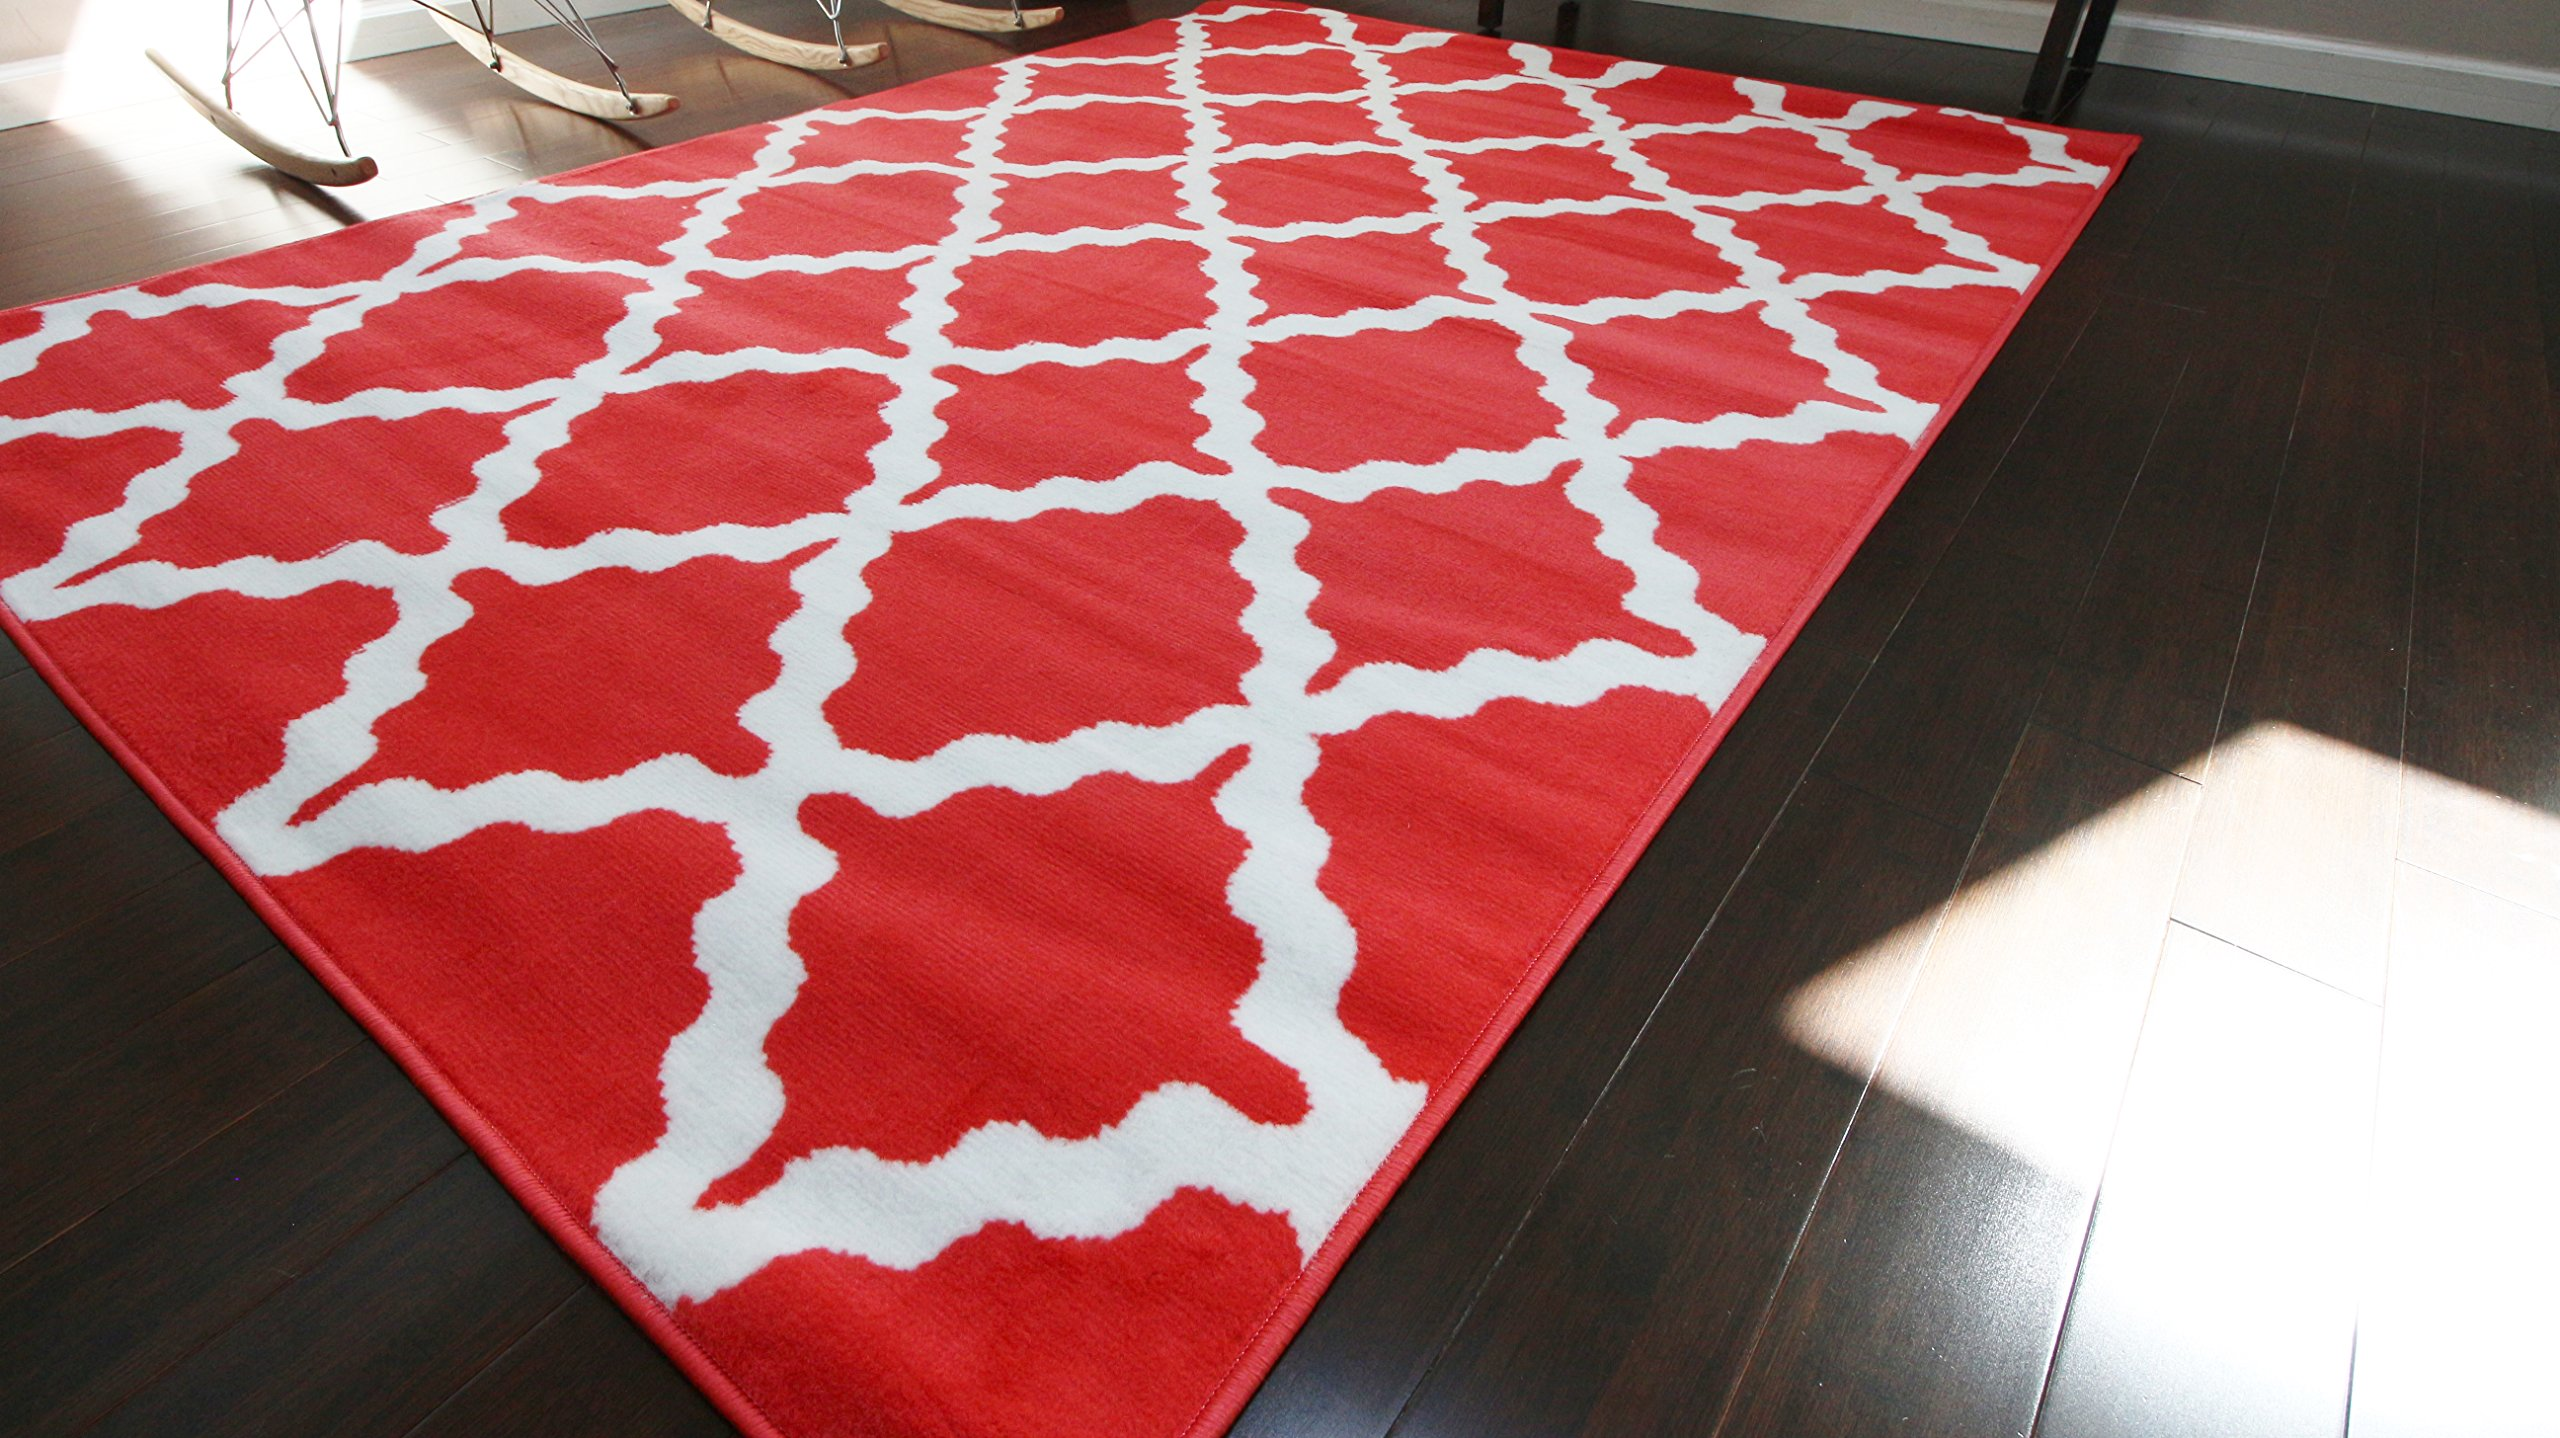 Generations Contemporary Pattern Modern Area Rug, 2' x 3', Crimson Red/White